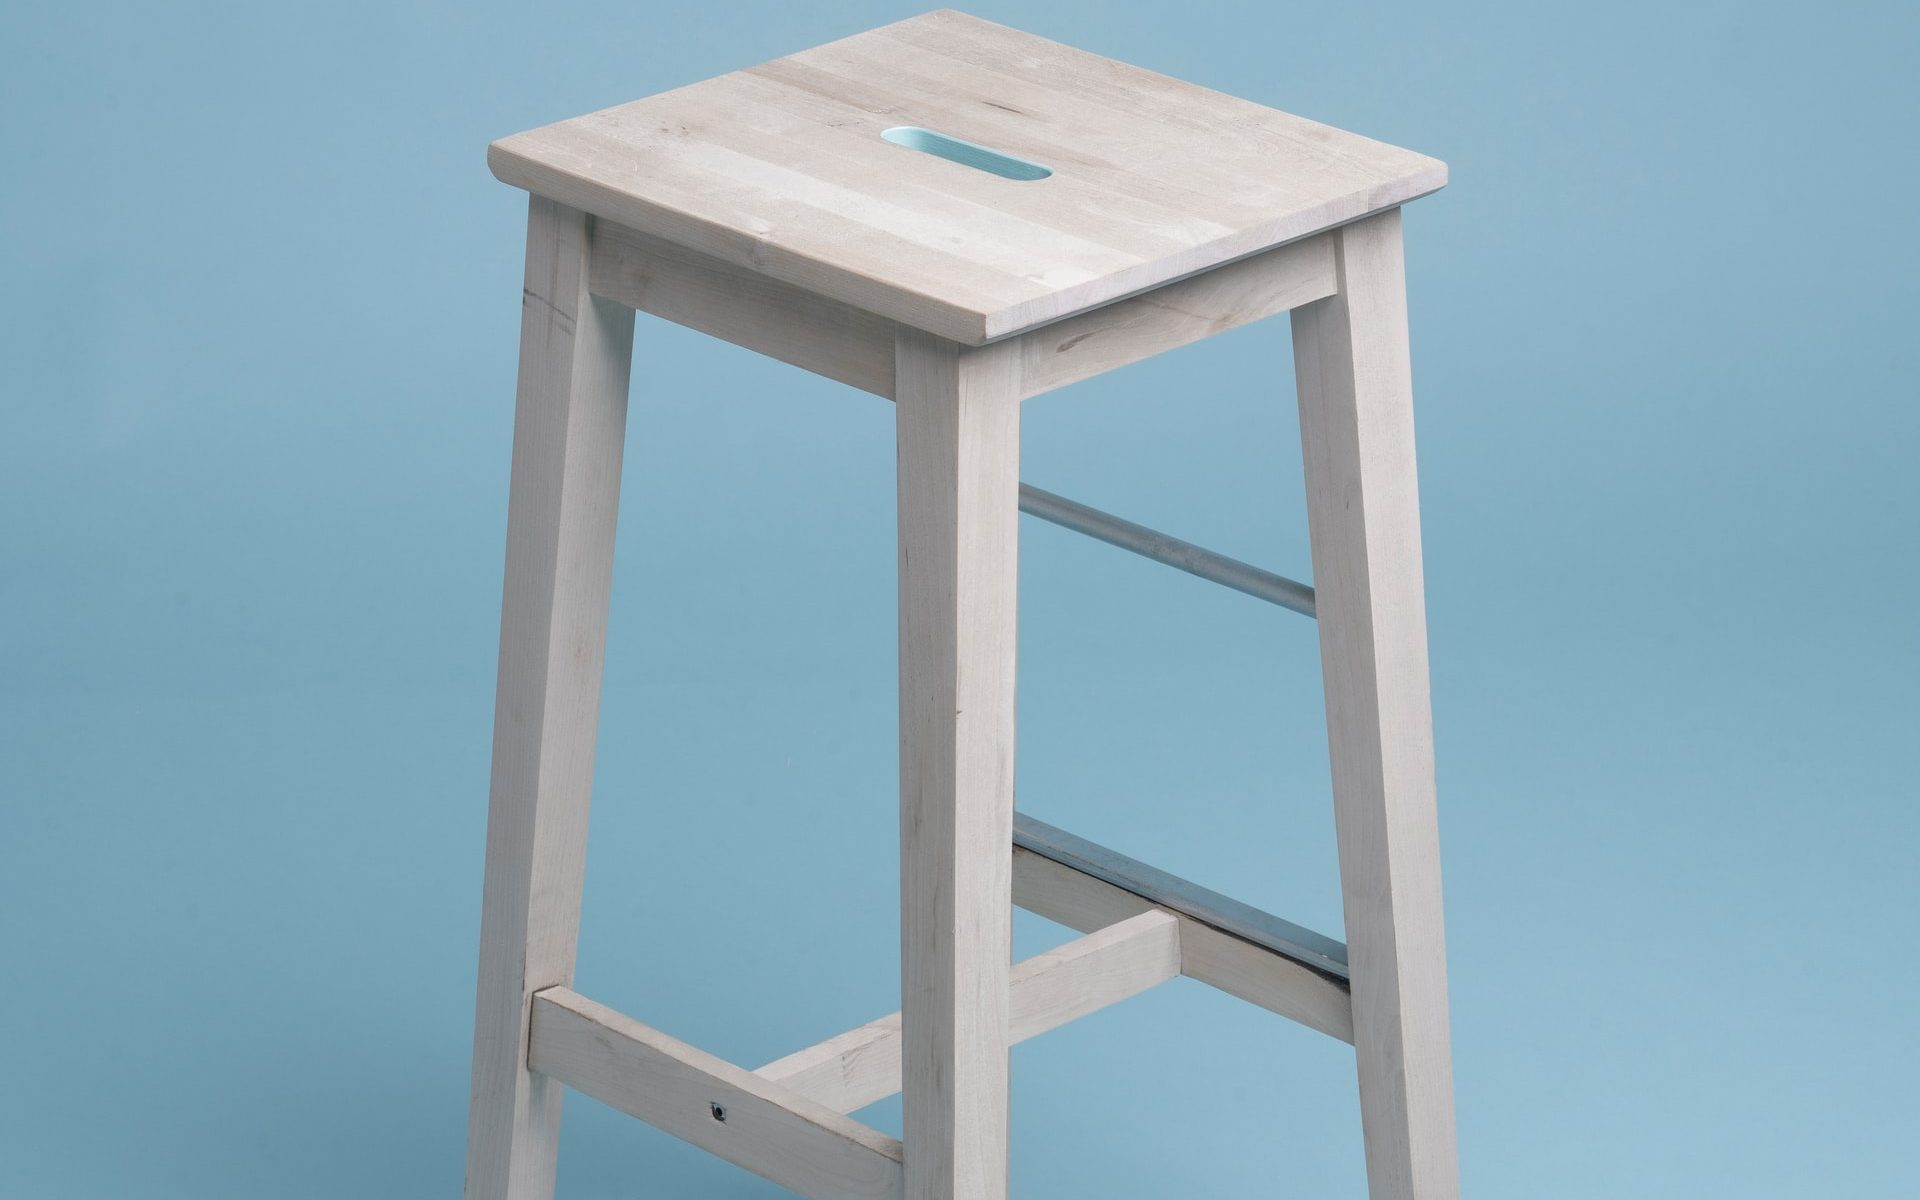 wooden chair on blue background